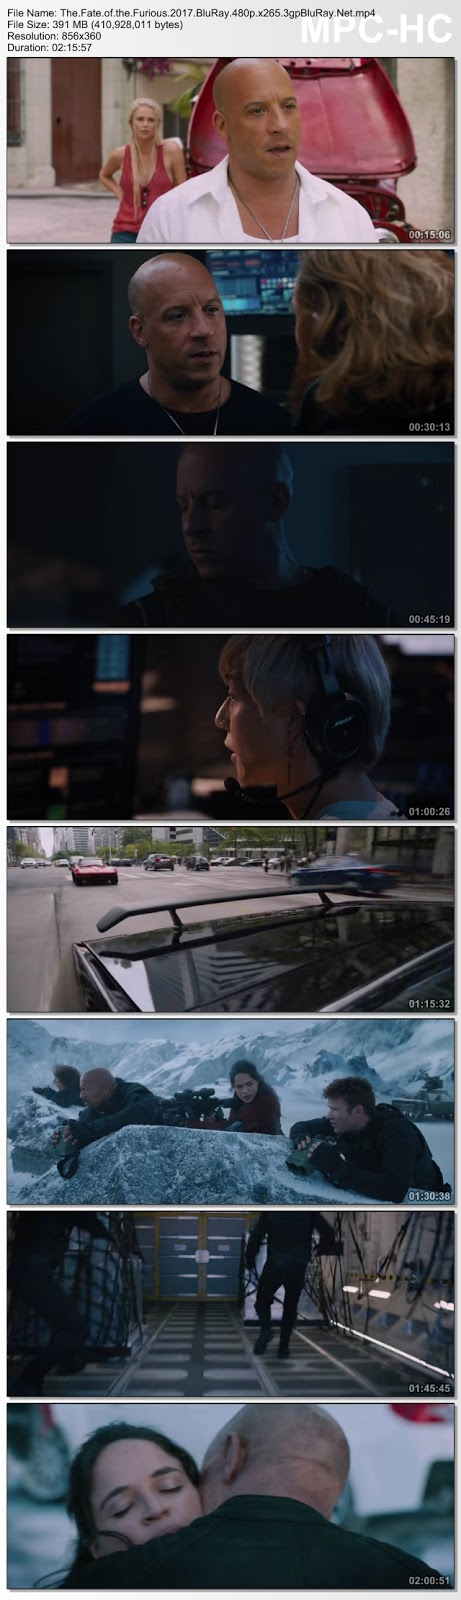 Screenshots Download The.Fate.of.the.Furious.2017.BluRay.480p.x265.3gpBluRay.Net.mp4